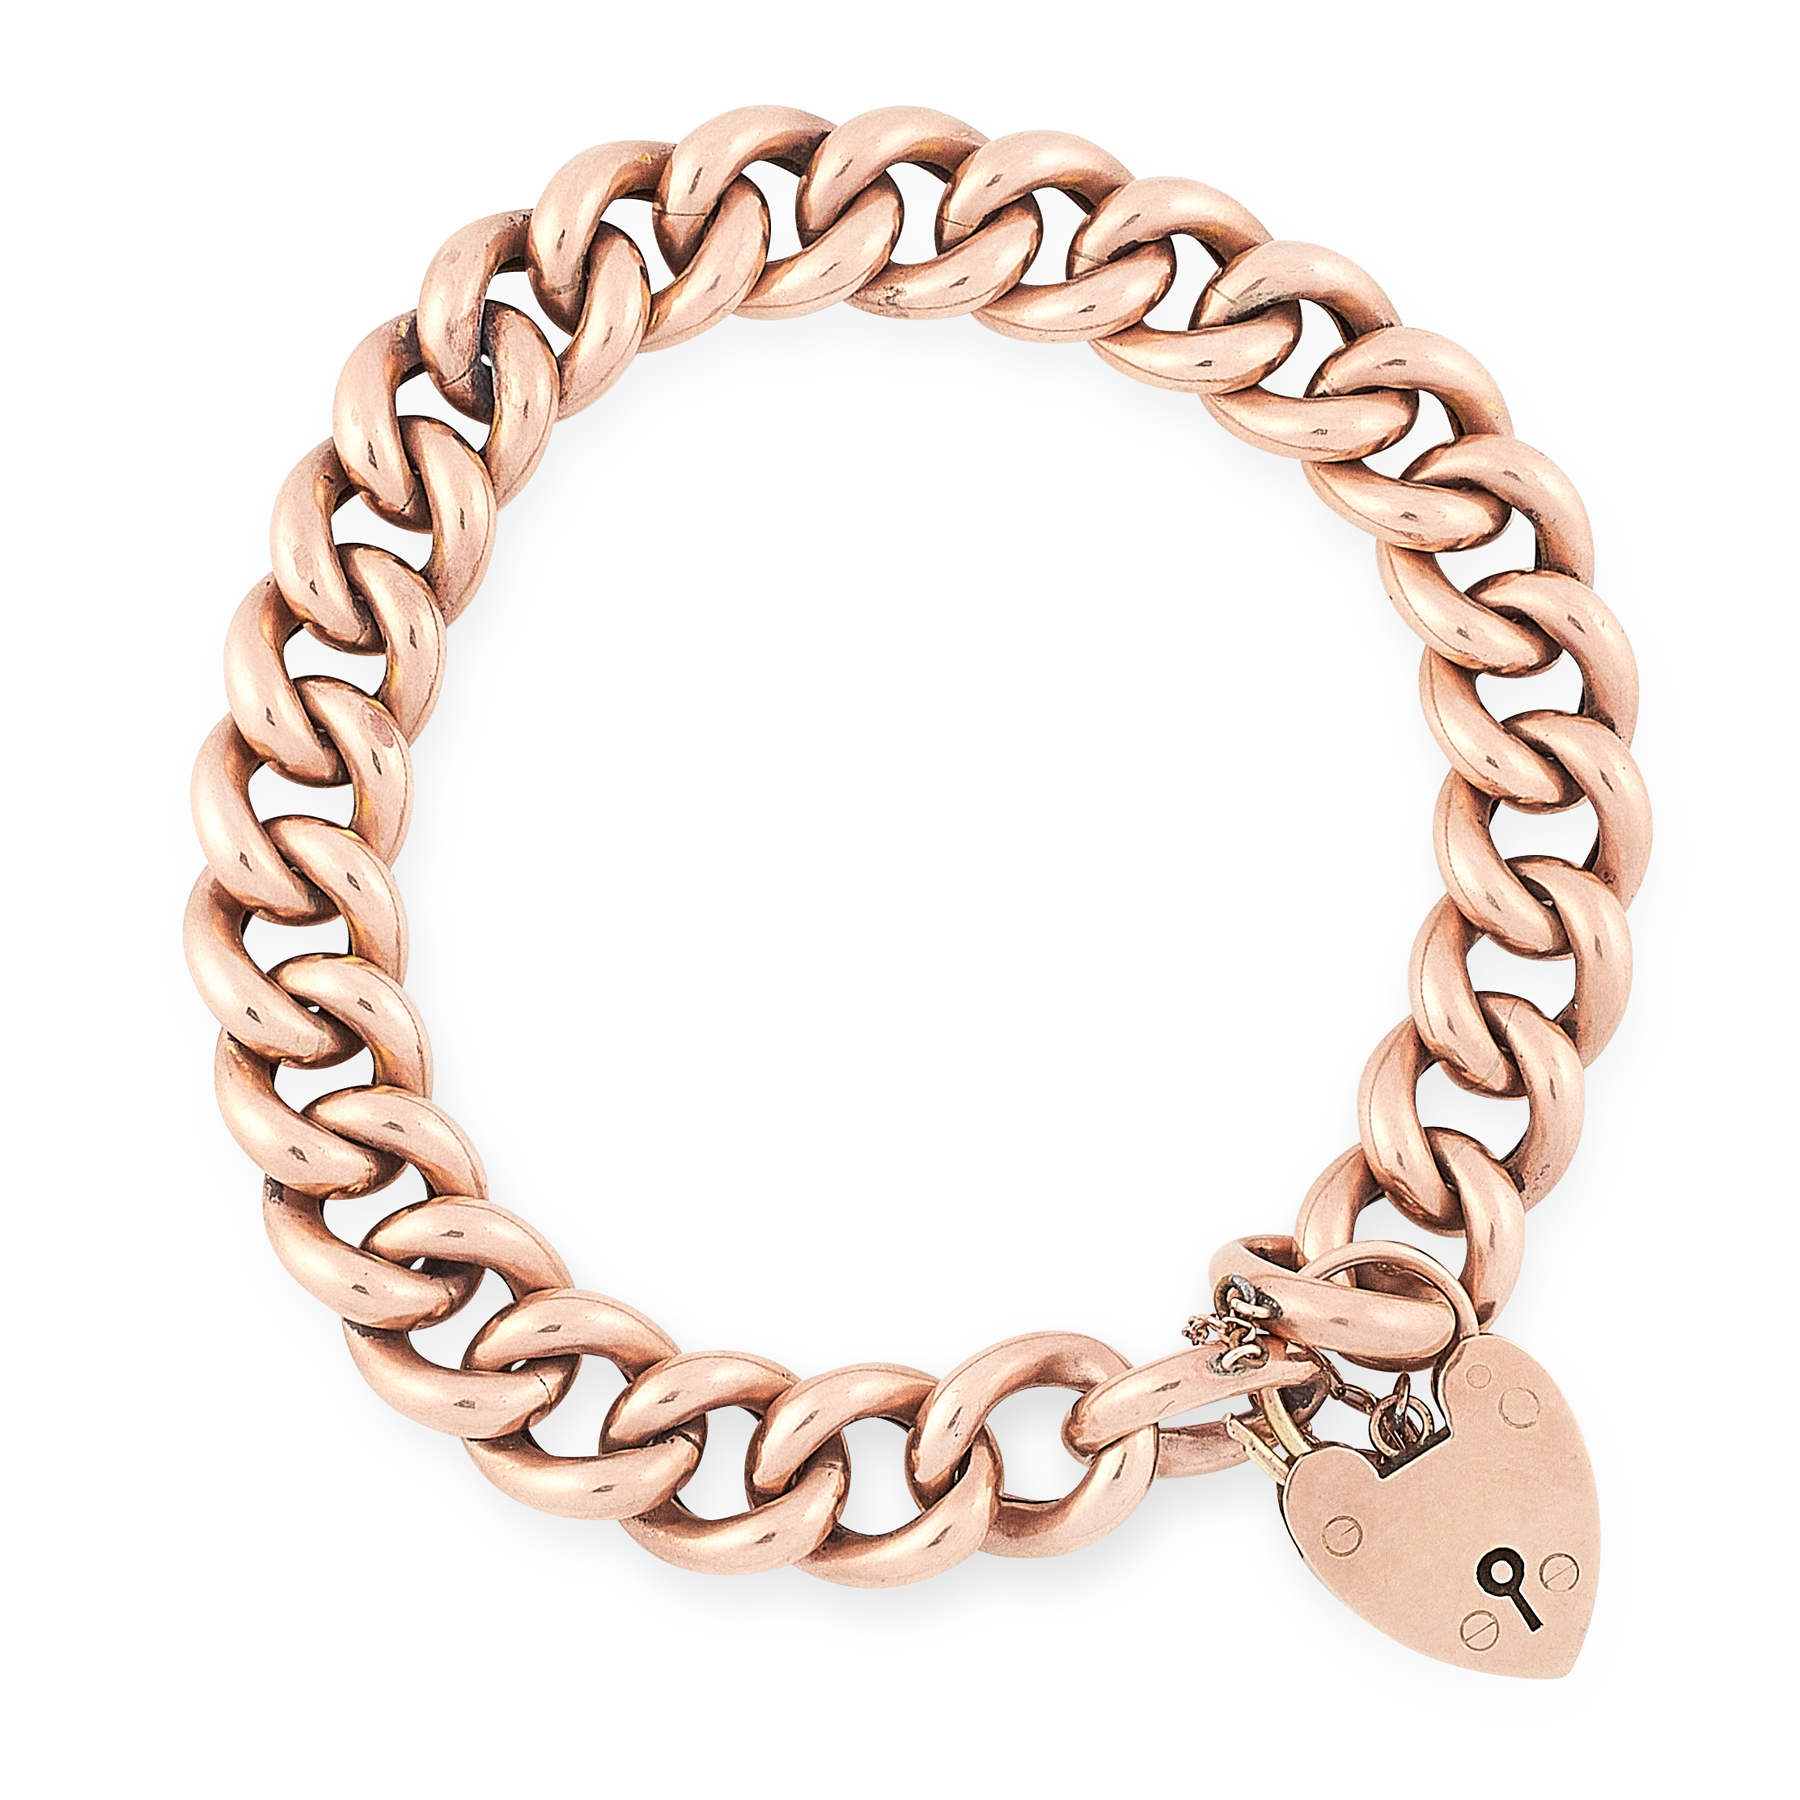 AN ANTIQUE SWEETHEART BRACELET in yellow gold, formed of a chunky curb link bracelet with a heart